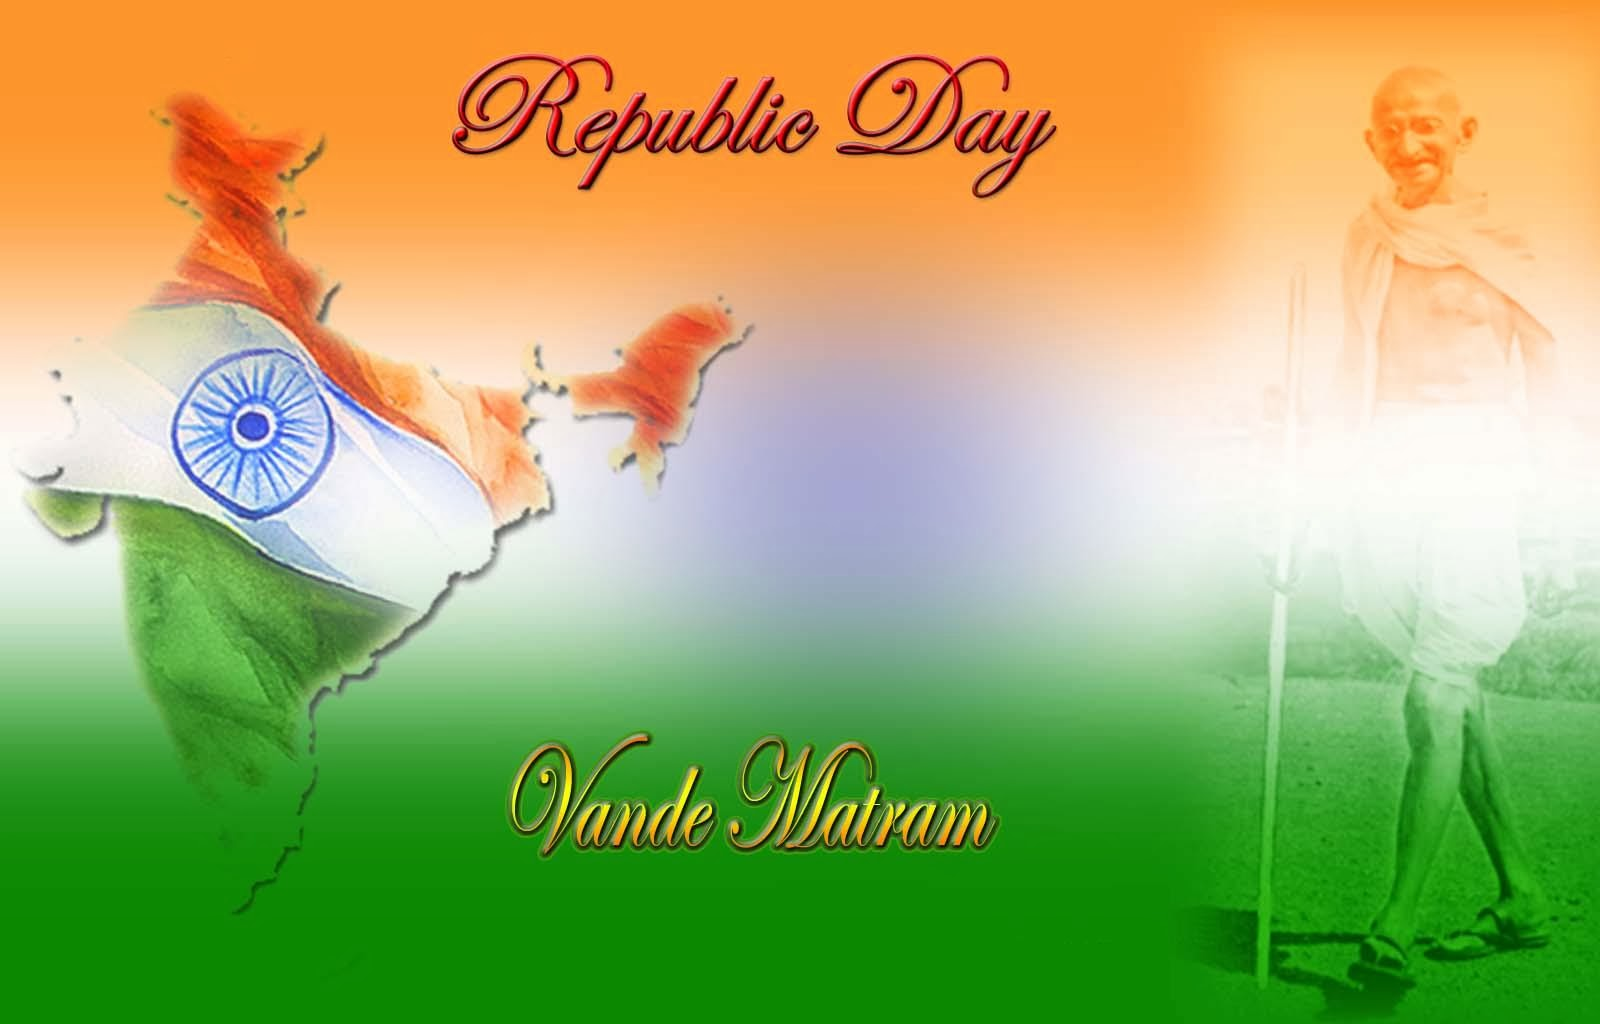 Wallpapers in HD HQ Wallpapers Happy Republic Day 2014 wallpapers 1600x1024